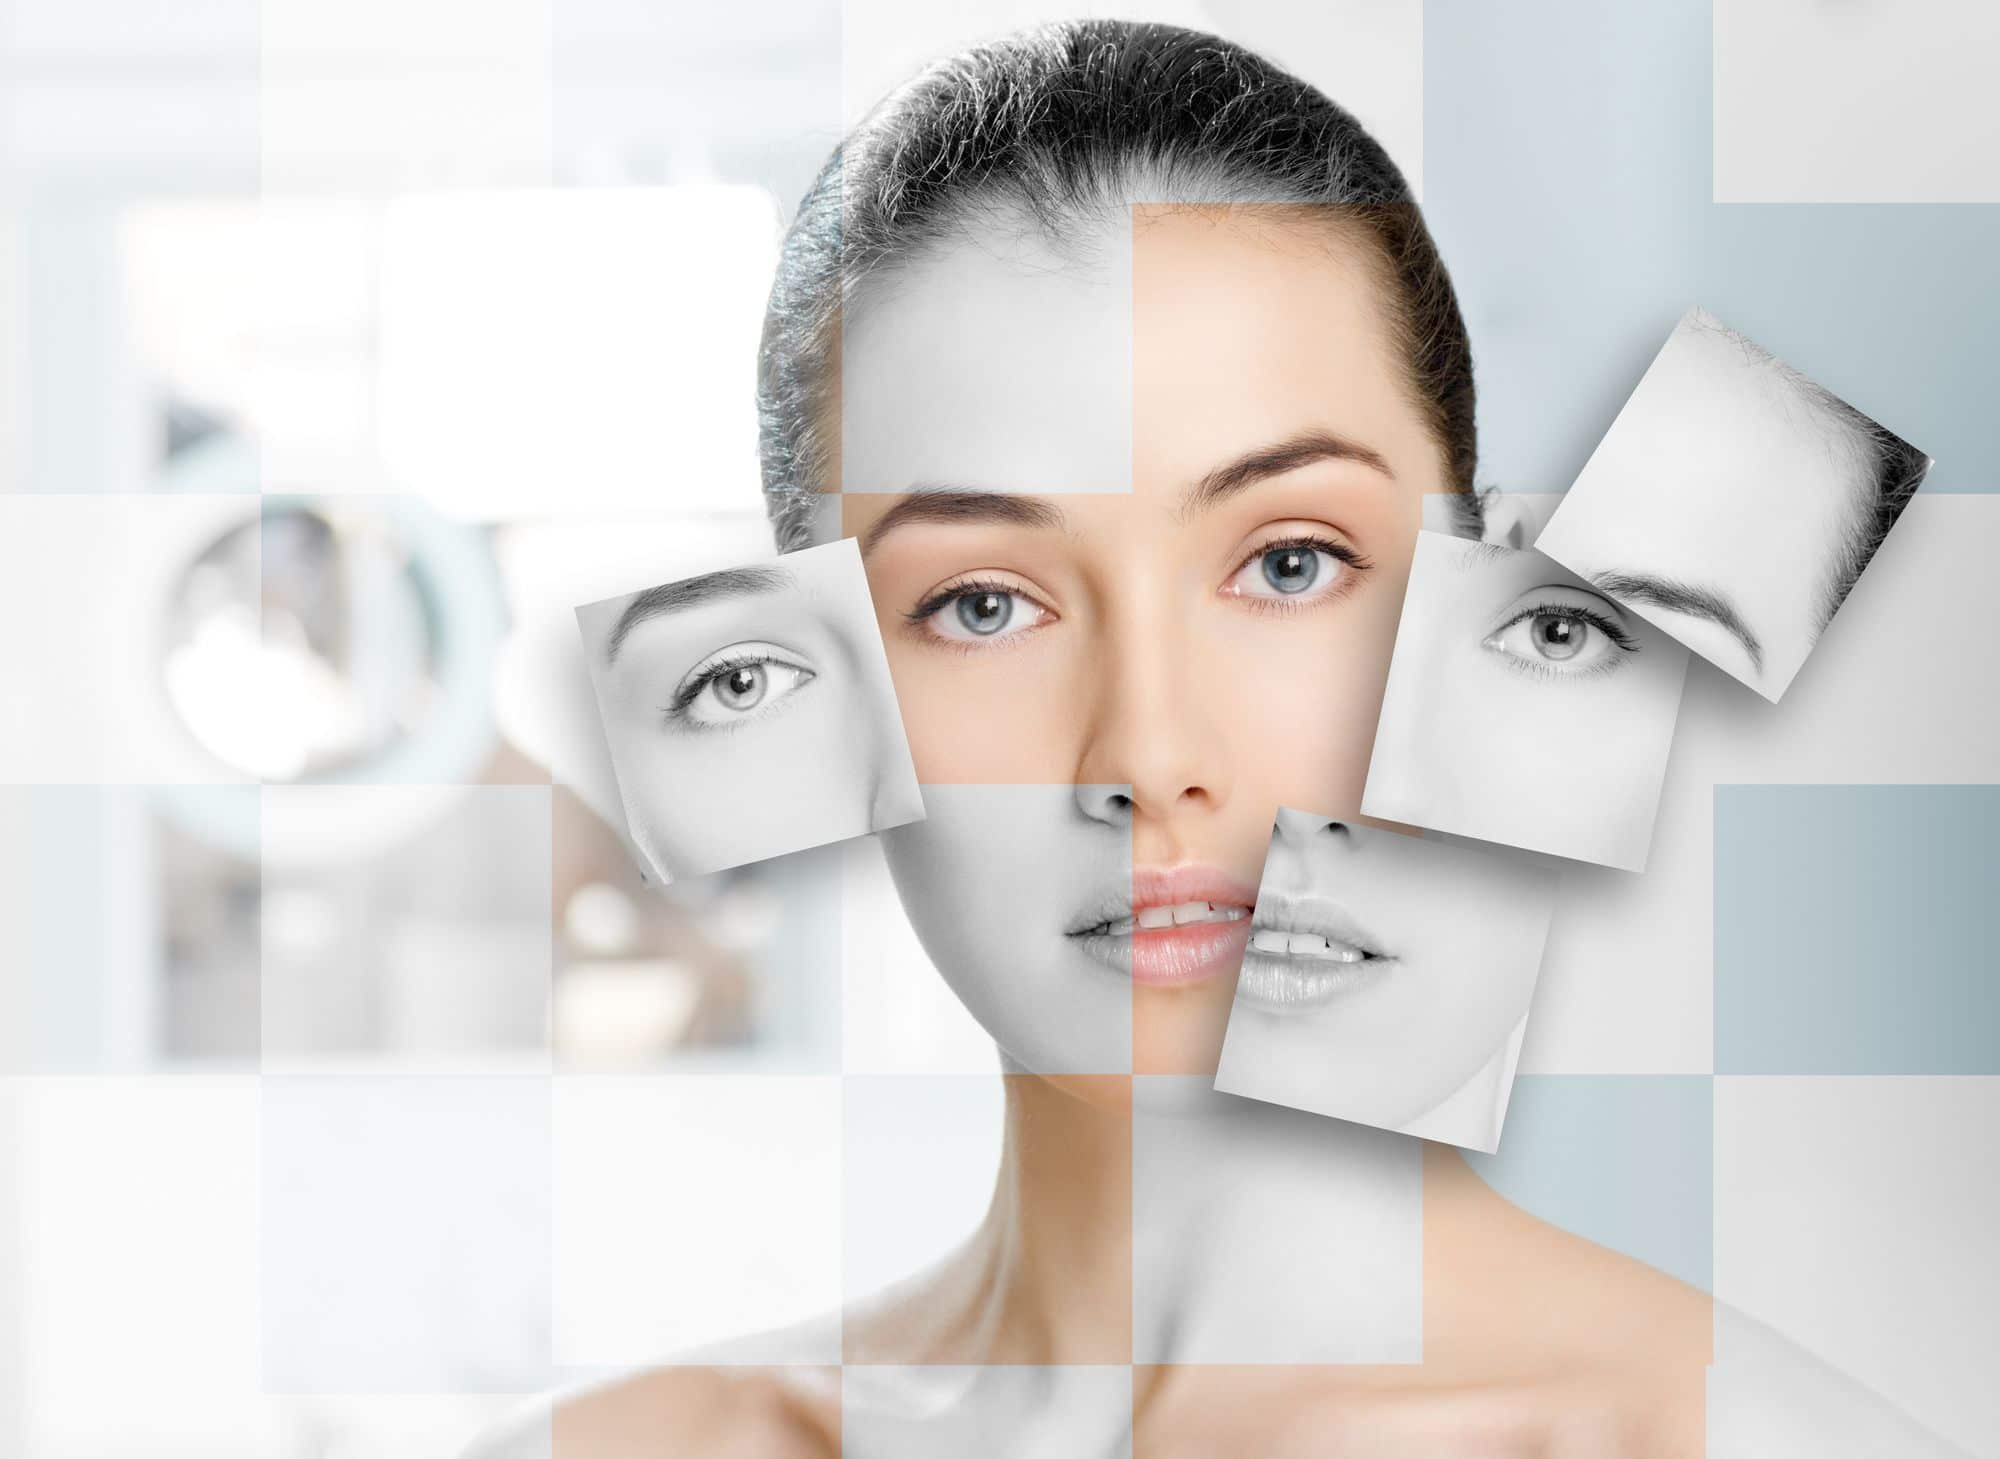 portrait of a woman for skin care